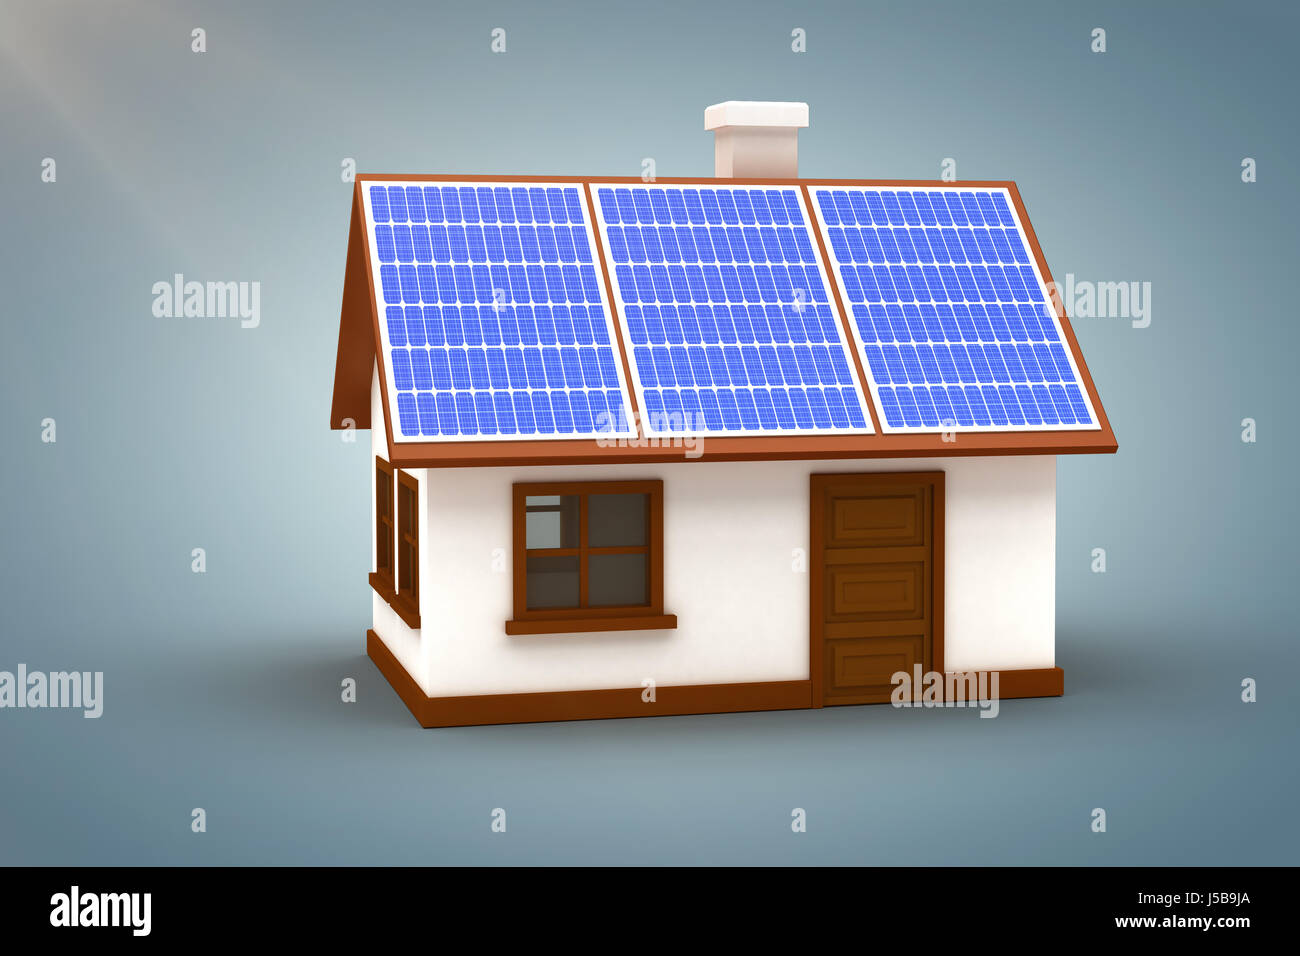 Vector image of 3d house with solar panels against grey vignette - Stock Image